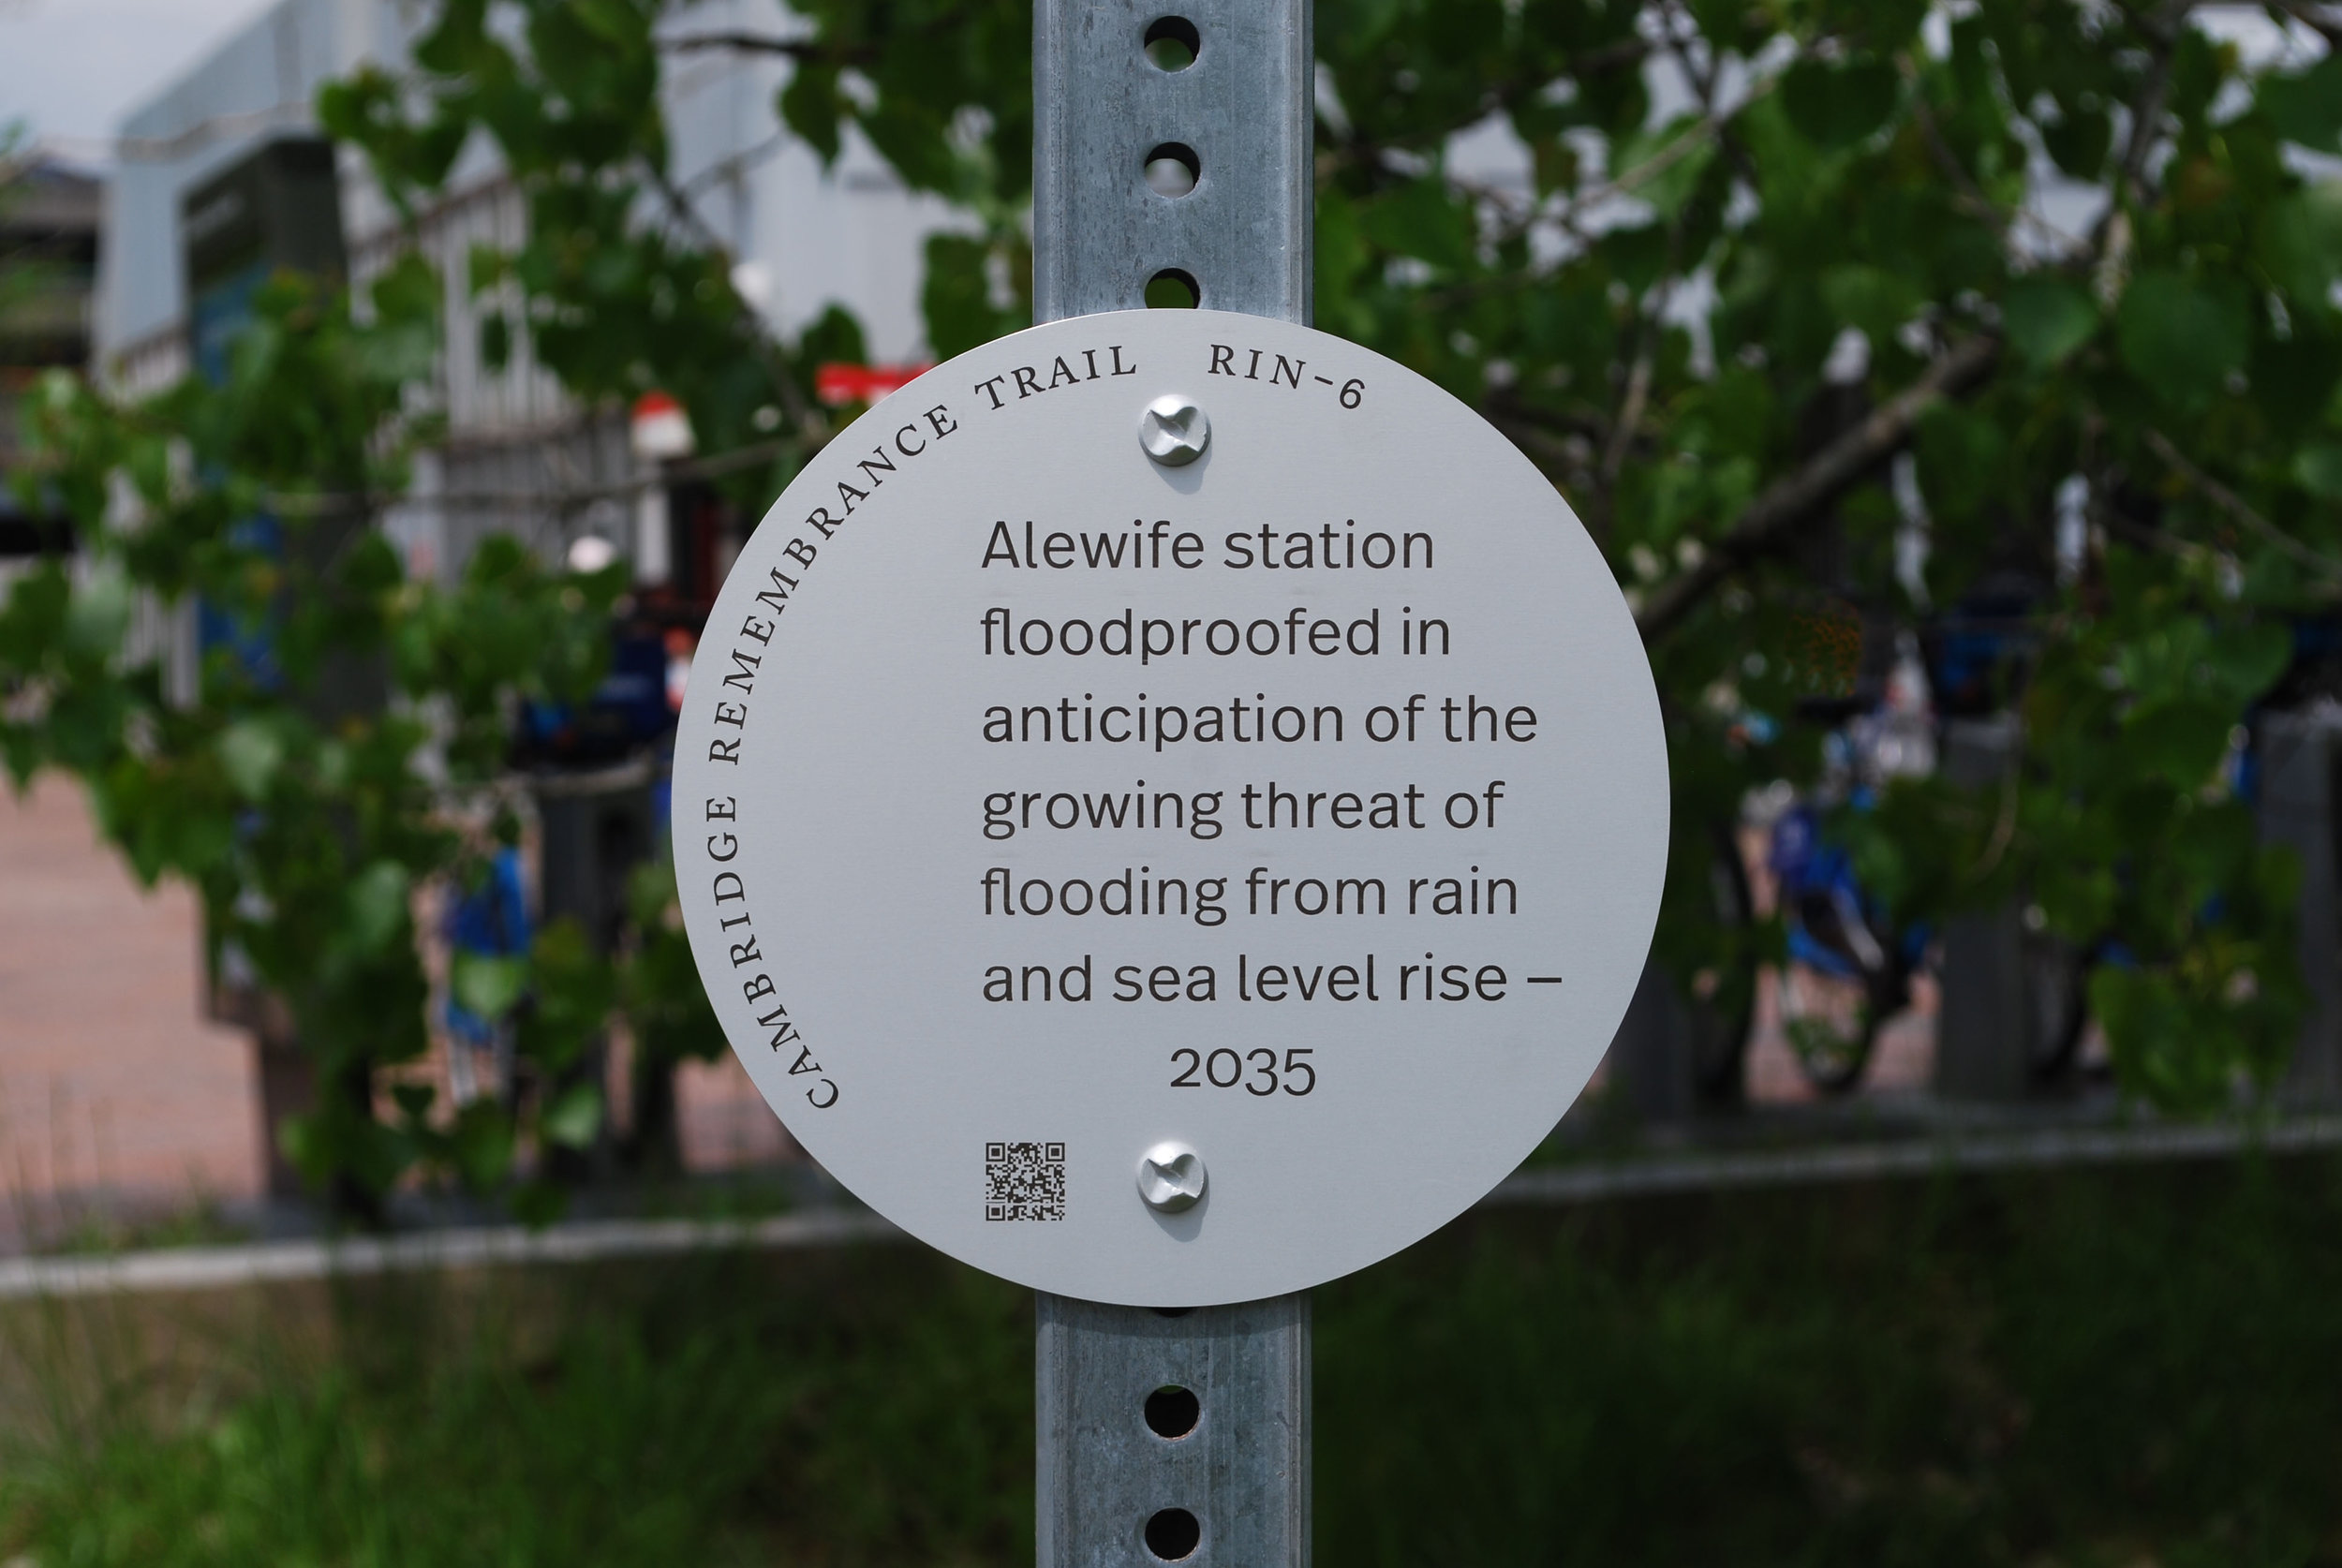 8-inch diameter plaque attached to street sign pole